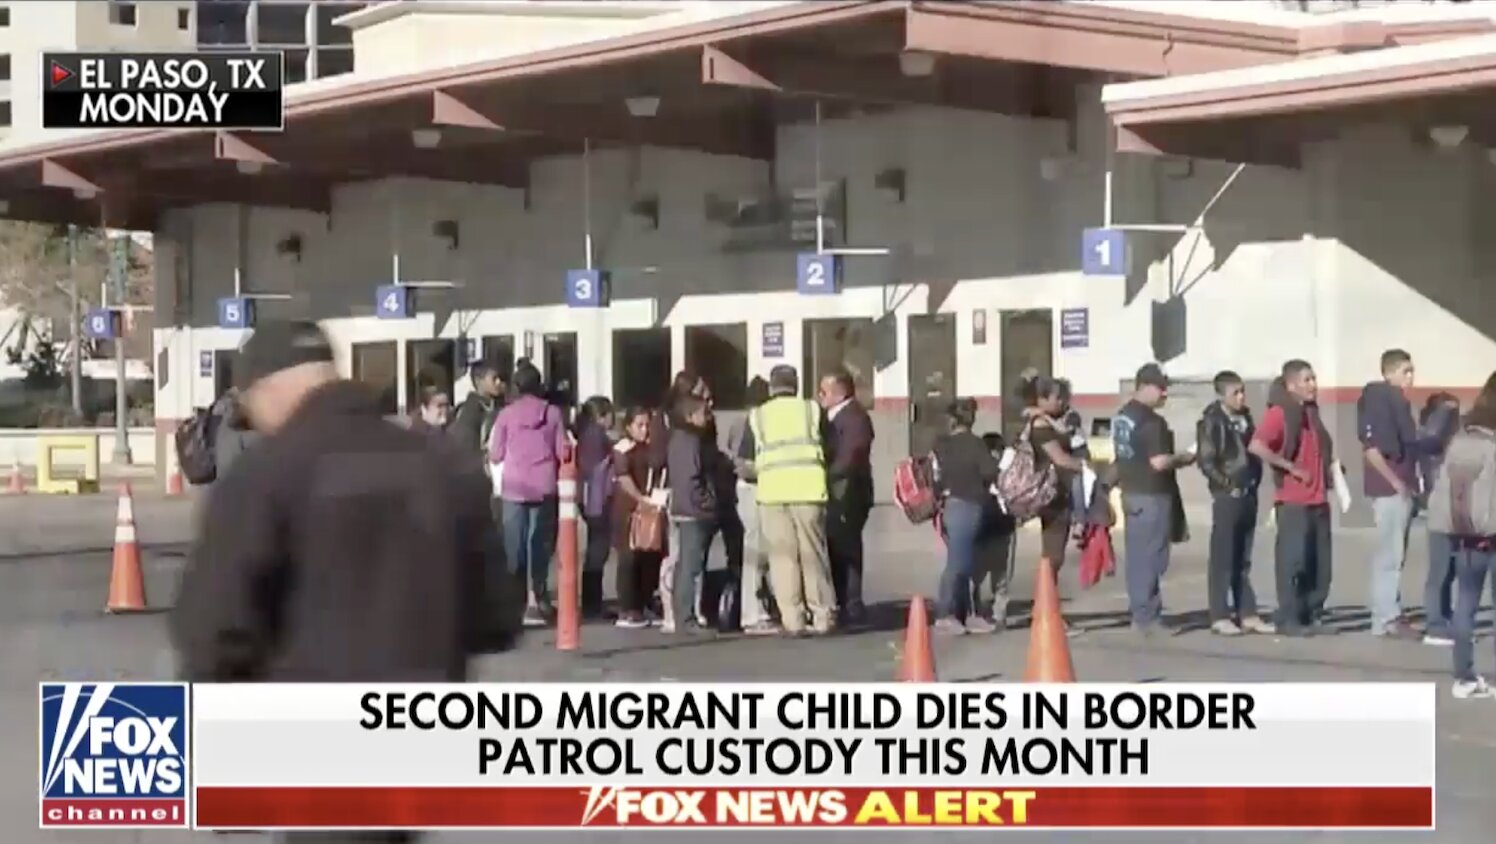 Hundreds of illegal immigrants set free in Texas and New Mexico amid influx from Central America